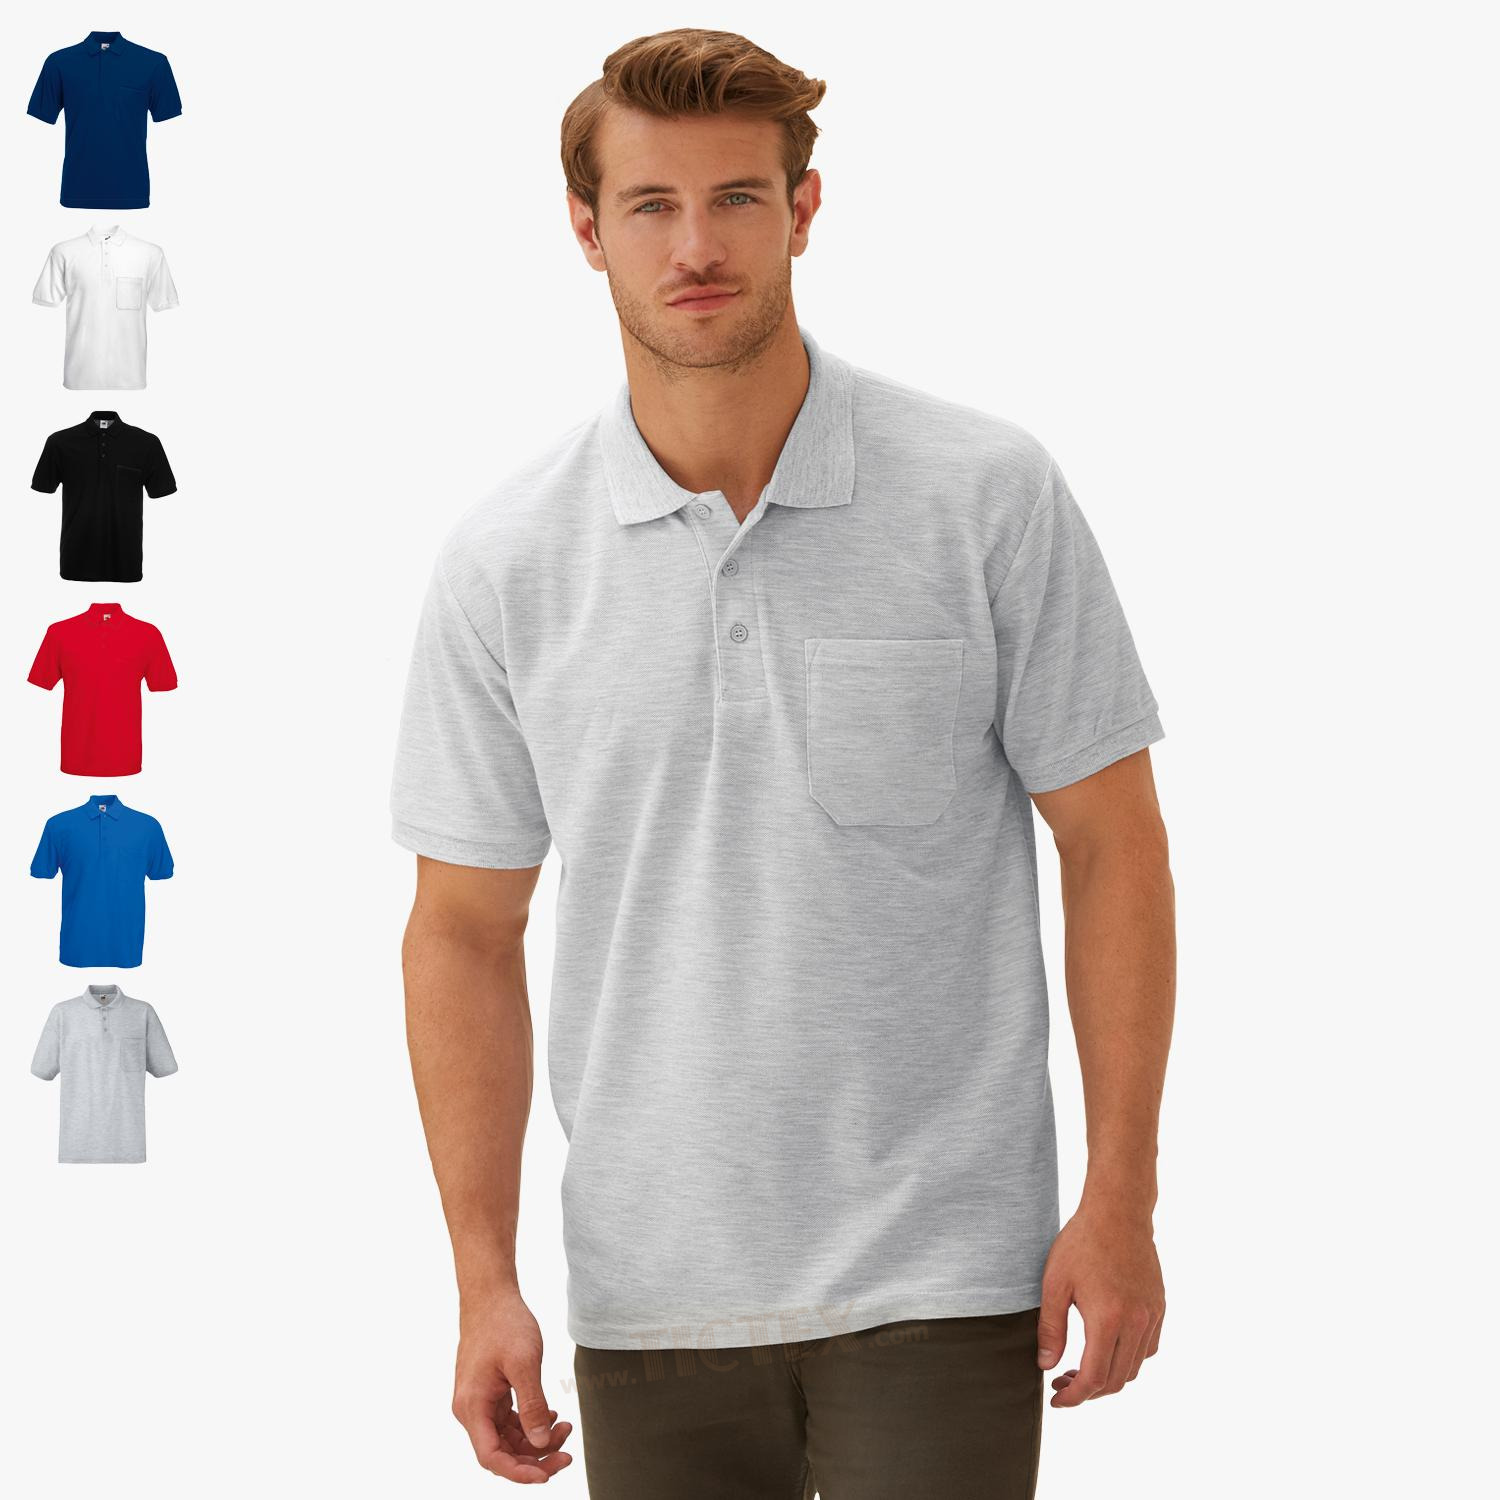 new concept 6ee8d a9527 Fruit of the Loom - Poloshirt mit Brusttasche '65/35 Pocket ...